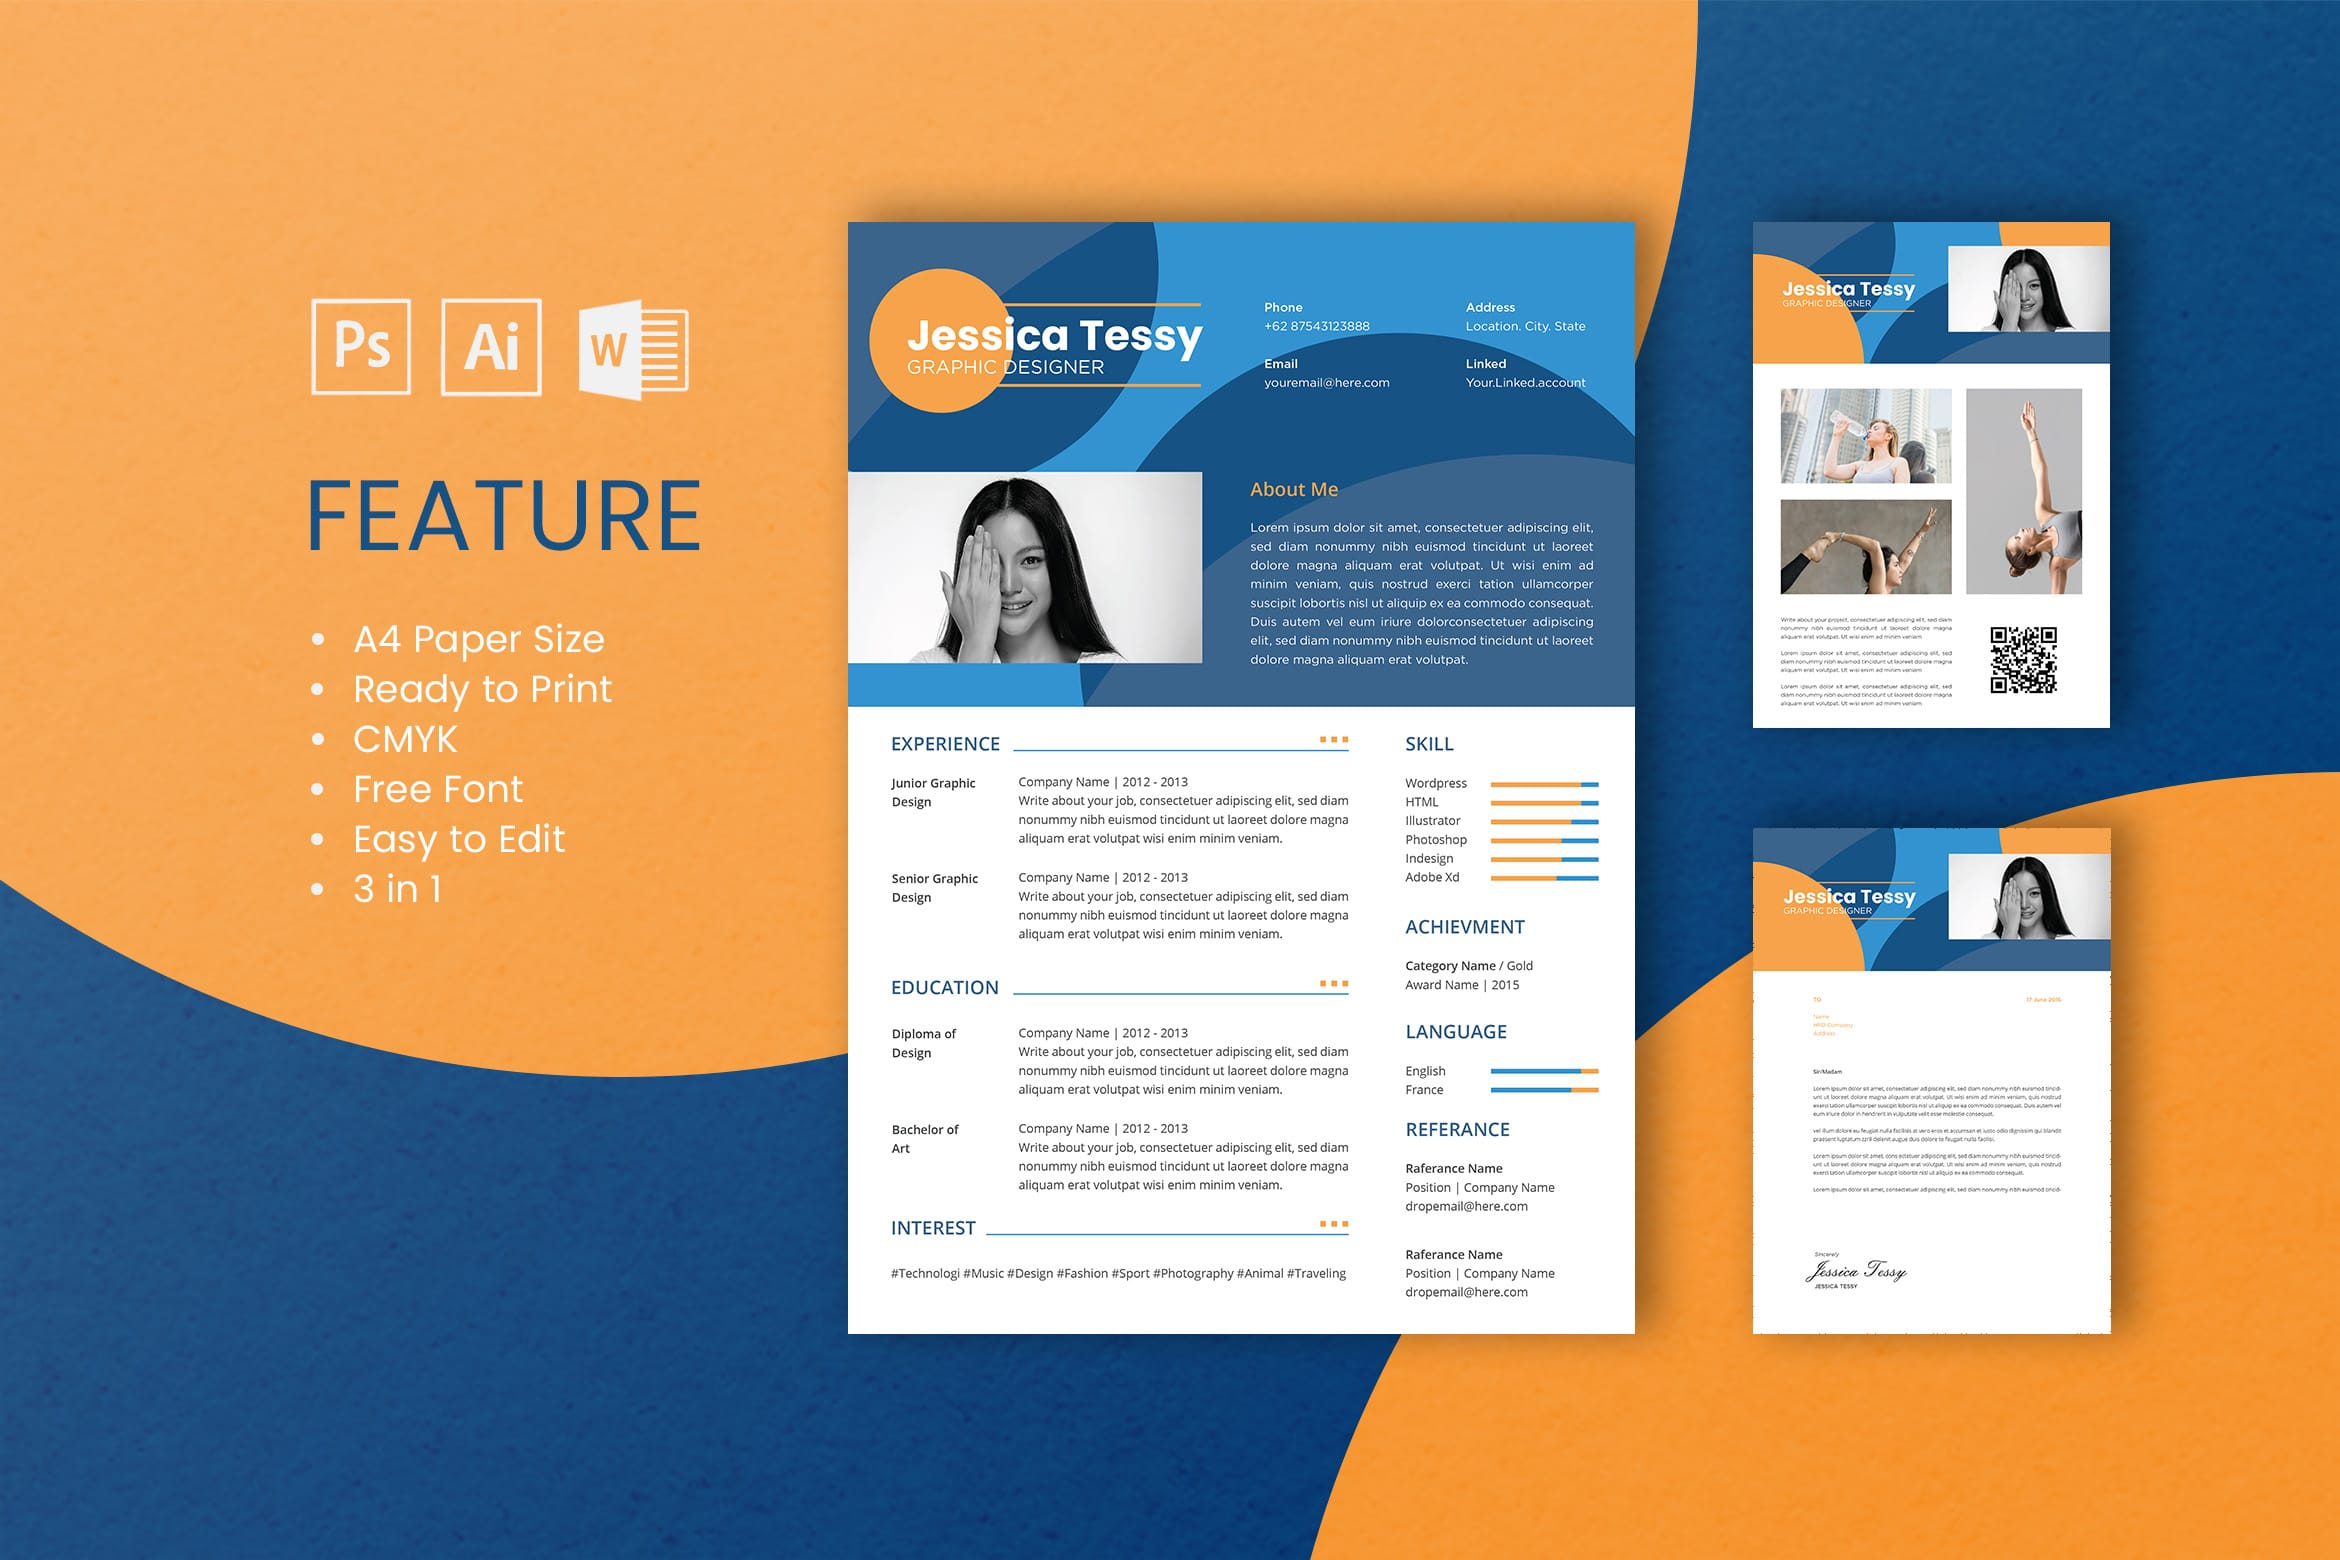 CV Resume - Graphic Designer Profile 2